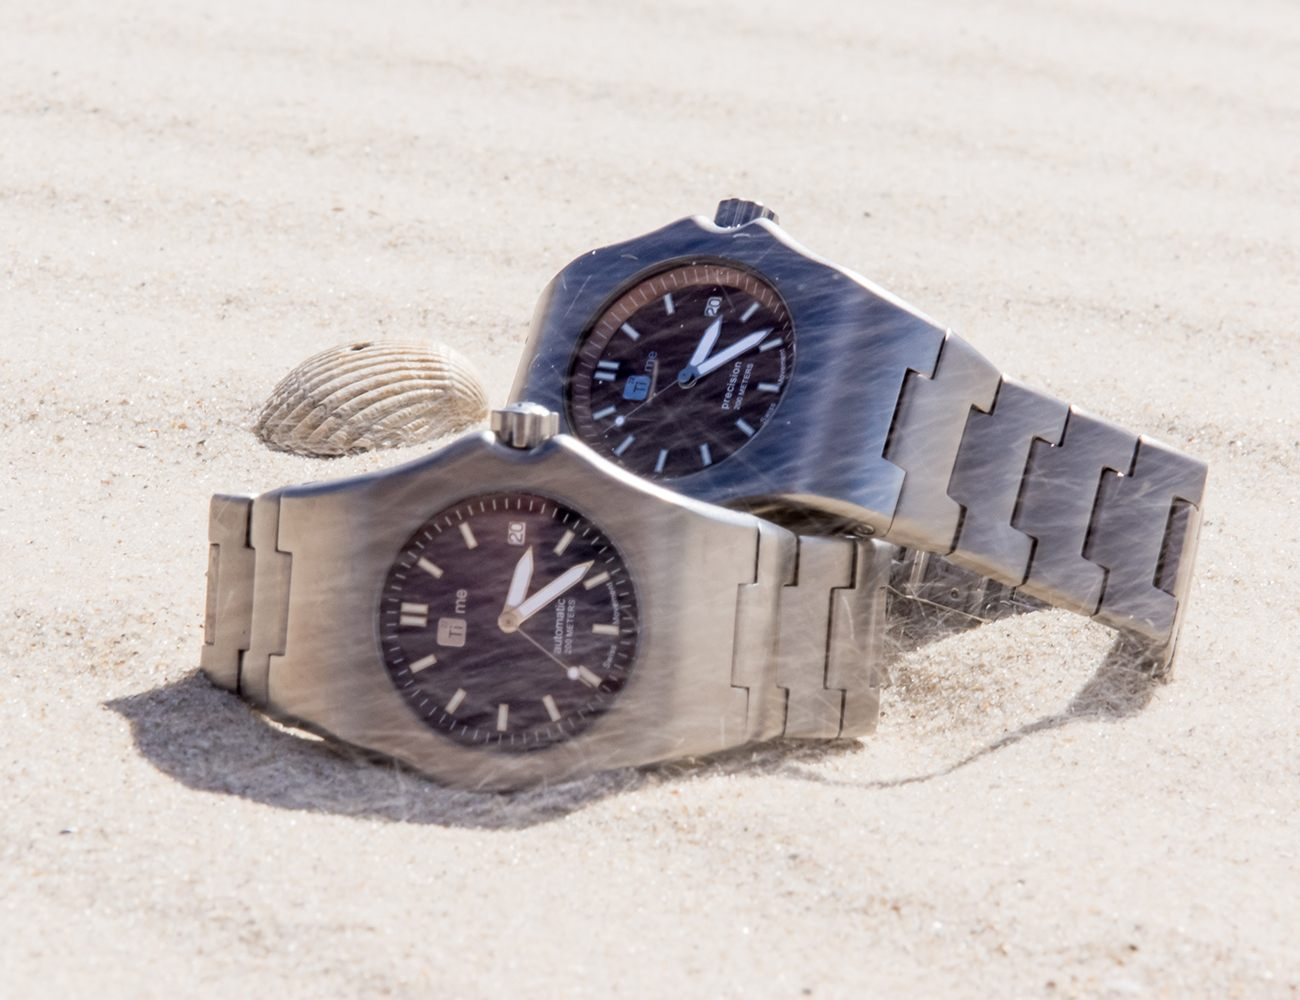 Robusto – The Strongest Watch. Made from Titanium.